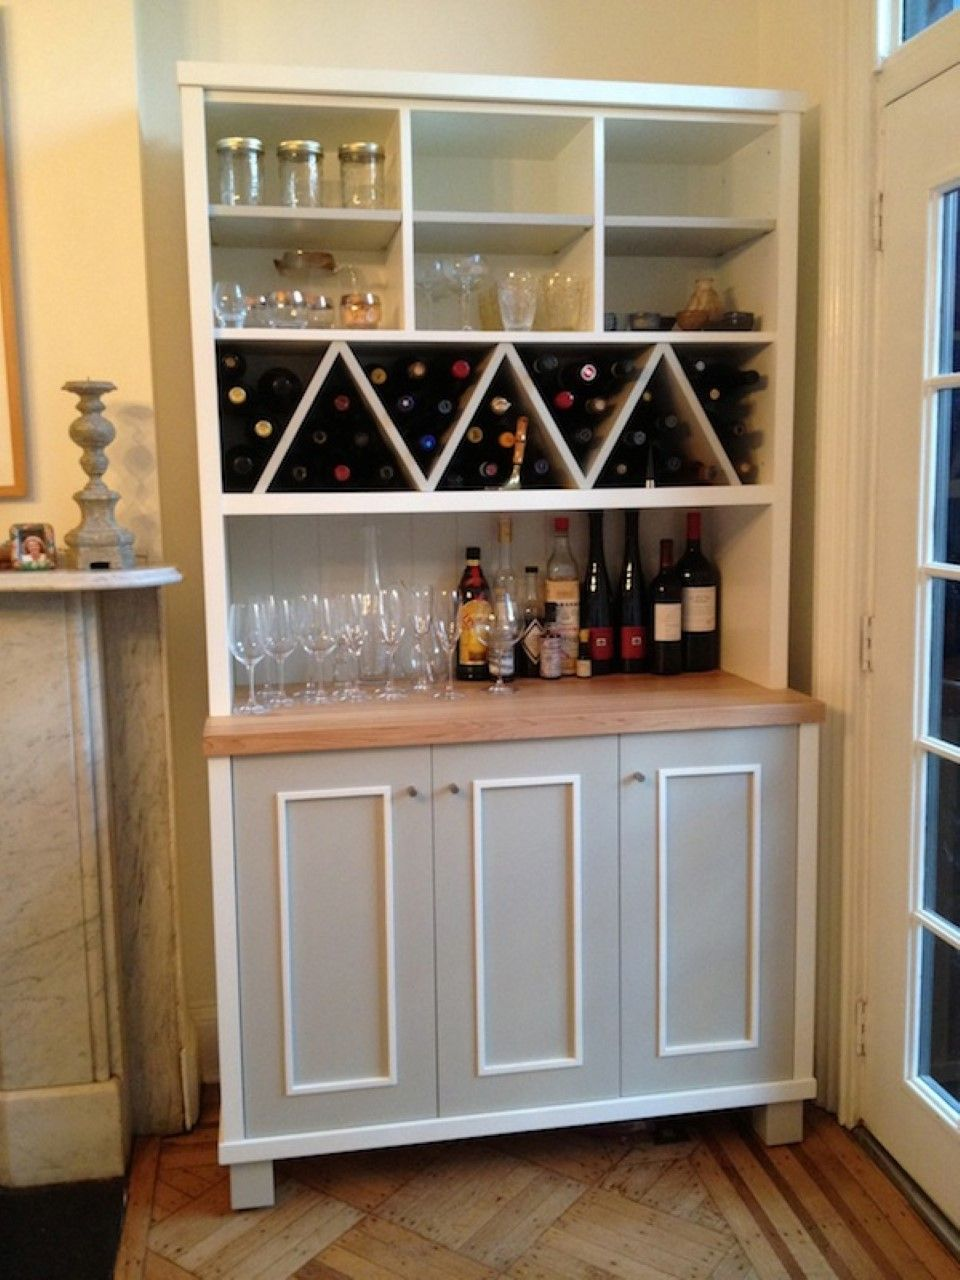 Kitchen Storage Unit Zigzag Shaped Wine Racks With Multi Purposes Kitchen Wall Storage